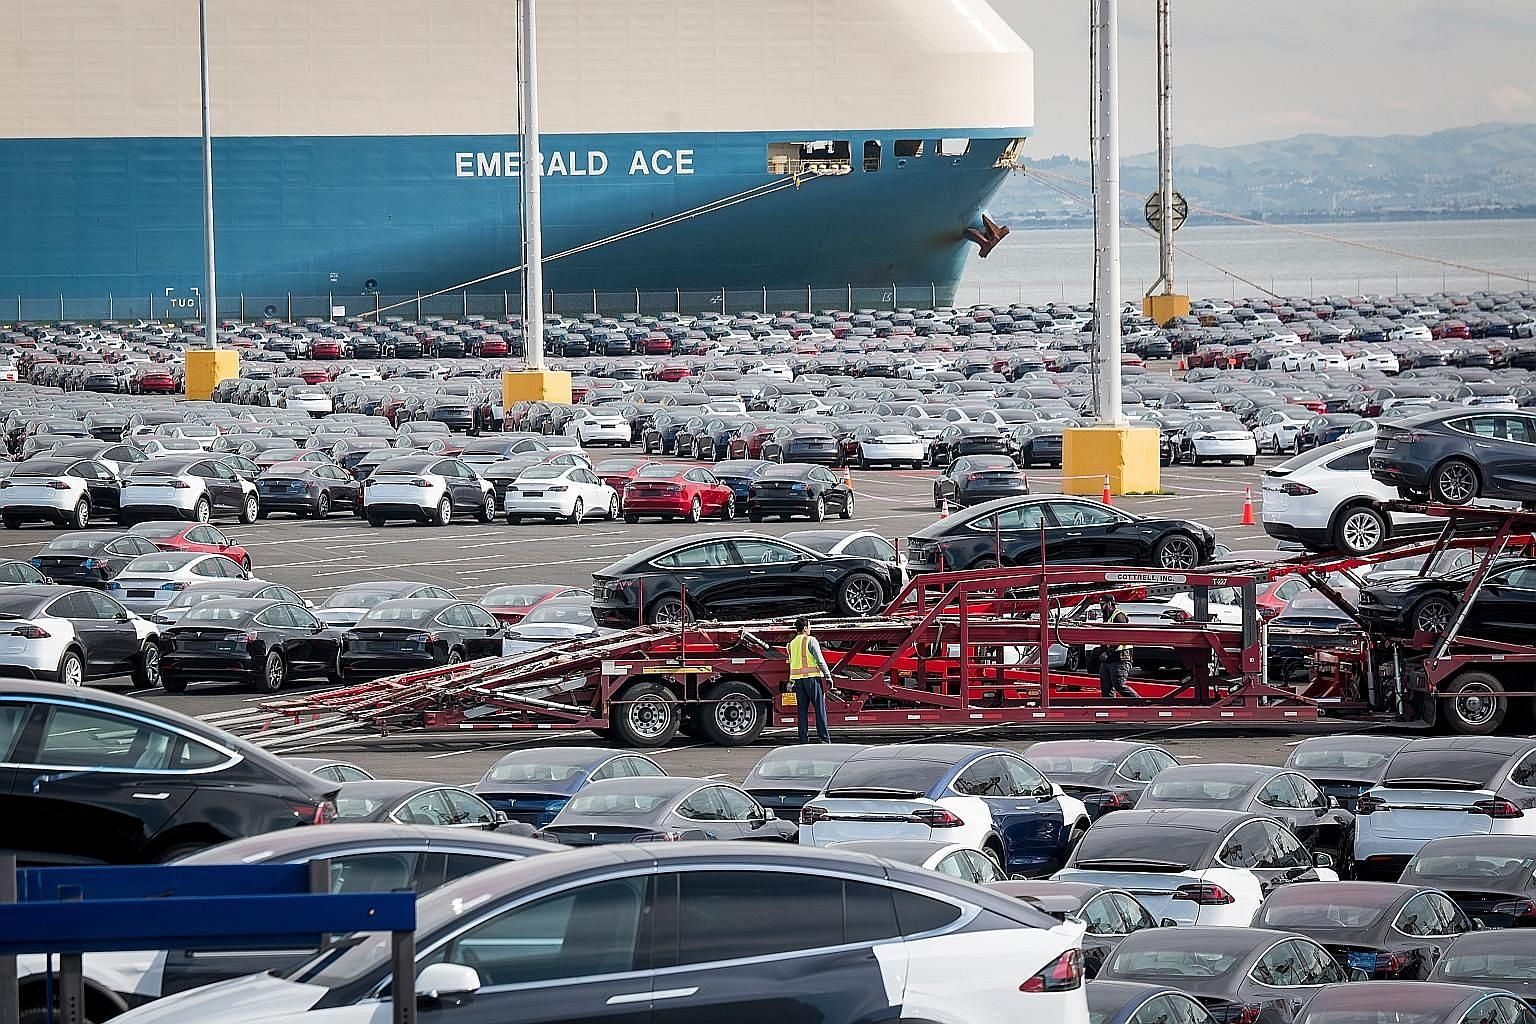 Tesla cars ready to be loaded onto vessels destined for China ahead of March 1, when a trade war truce between Beijing and Washington is set to end. There are hopeful signs for a resolution in the dispute, says the writer.